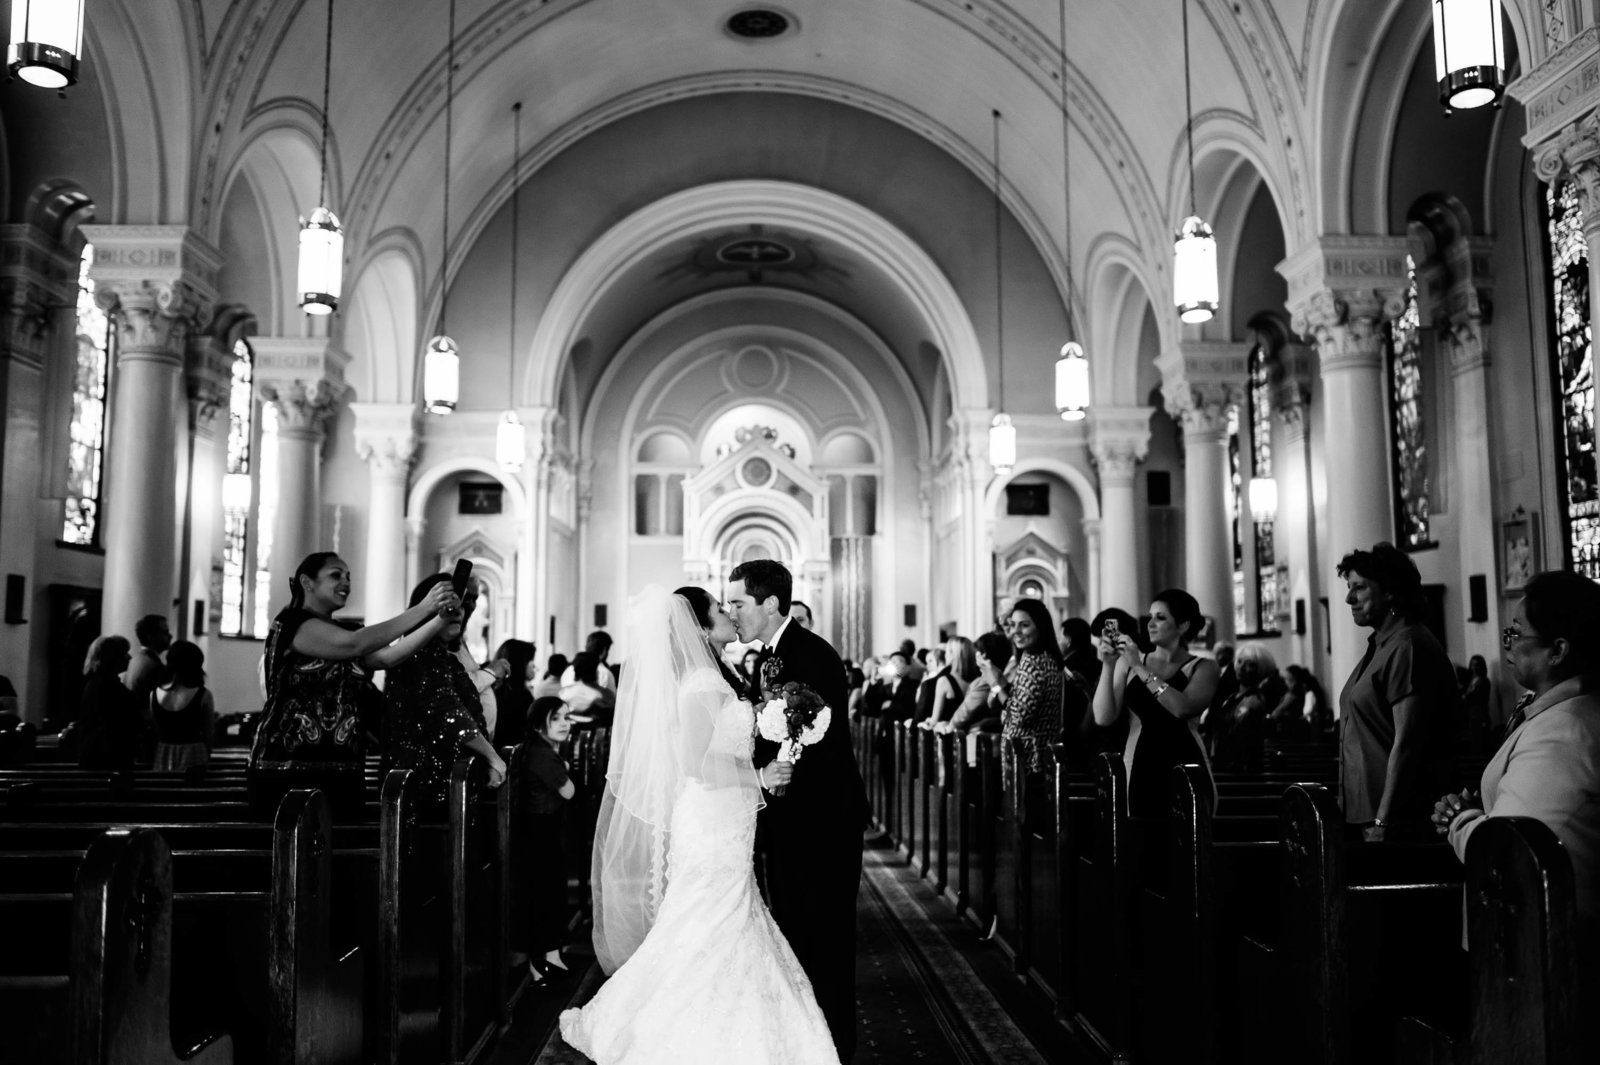 184-El-paso-wedding-photographer-ElSc_0465